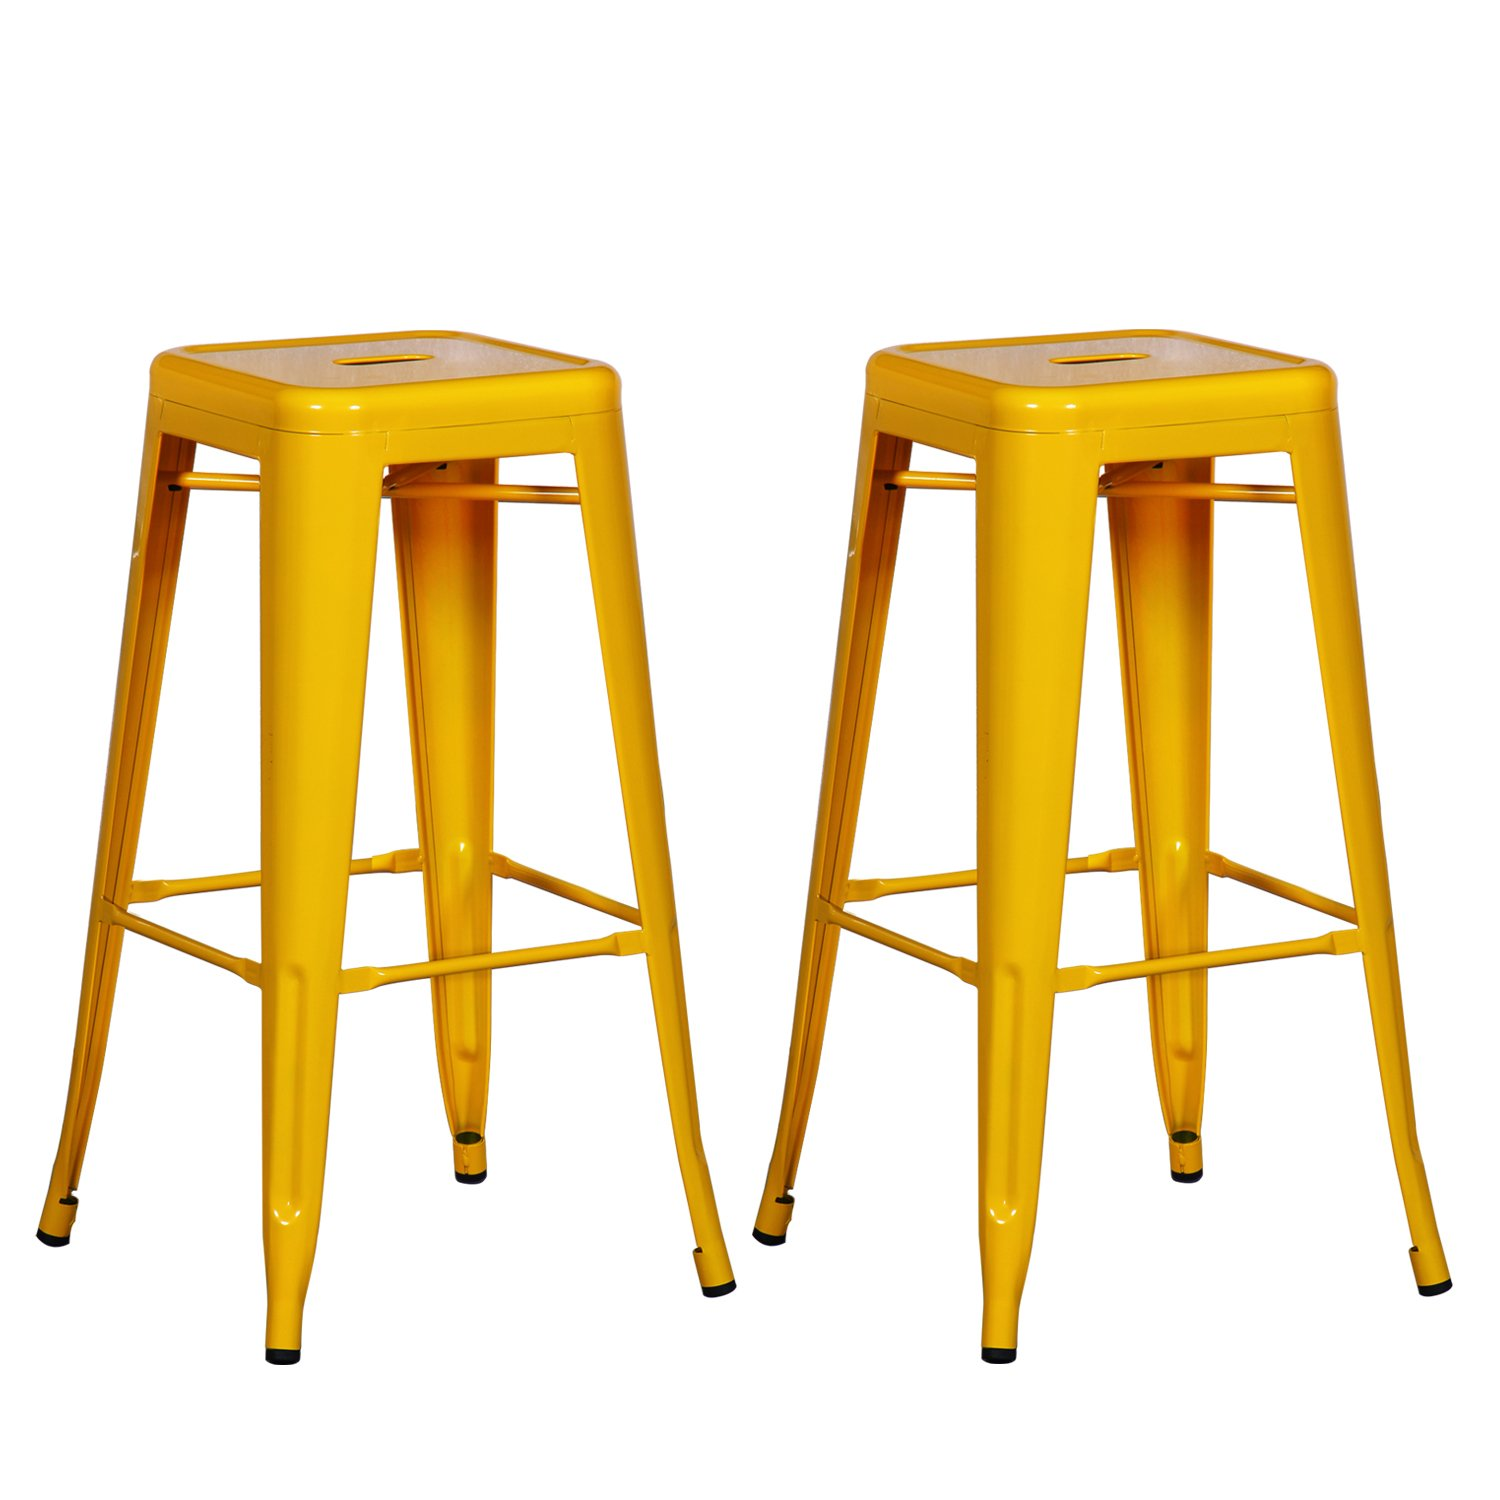 Patio Industrial Bar/Counter Stools 30 inches---- Homebeez Best Selling Metal Tolix Style Chair/ Stools Set of two (Yellow)